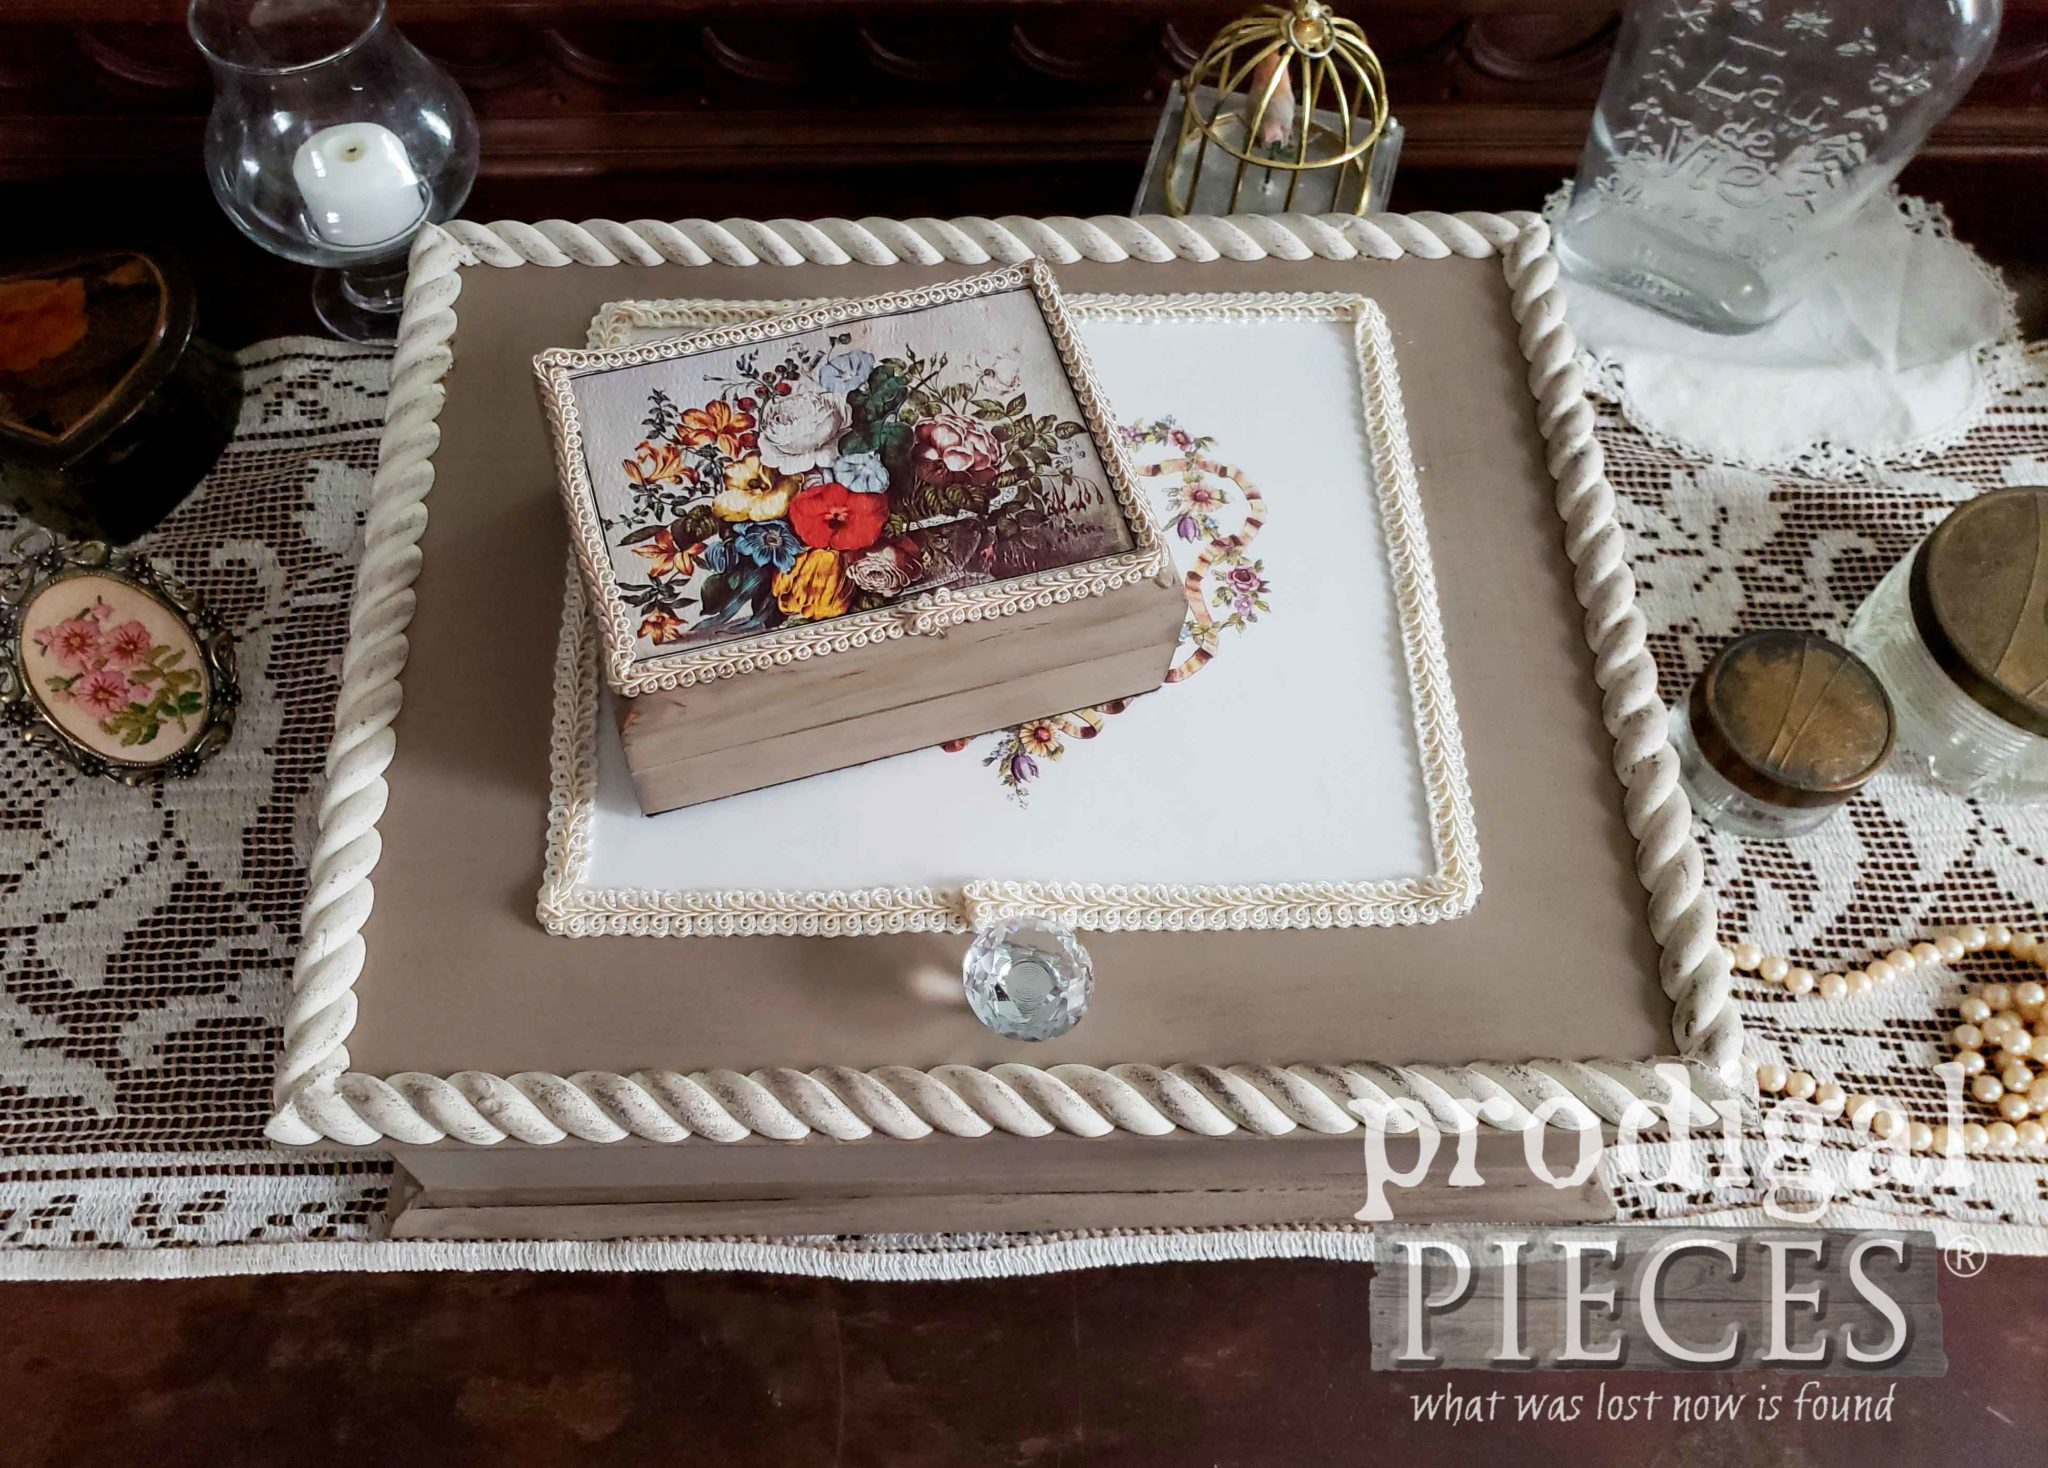 DIY Vintage Style Dresser Box Set: Includes Ring Box and Stationery Box | Tutorial by Larissa of Prodigal Pieces | prodigalpieces.com #prodigalpieces #vintage #diy #home #homedecor #shopping #homedecorideas #handmade